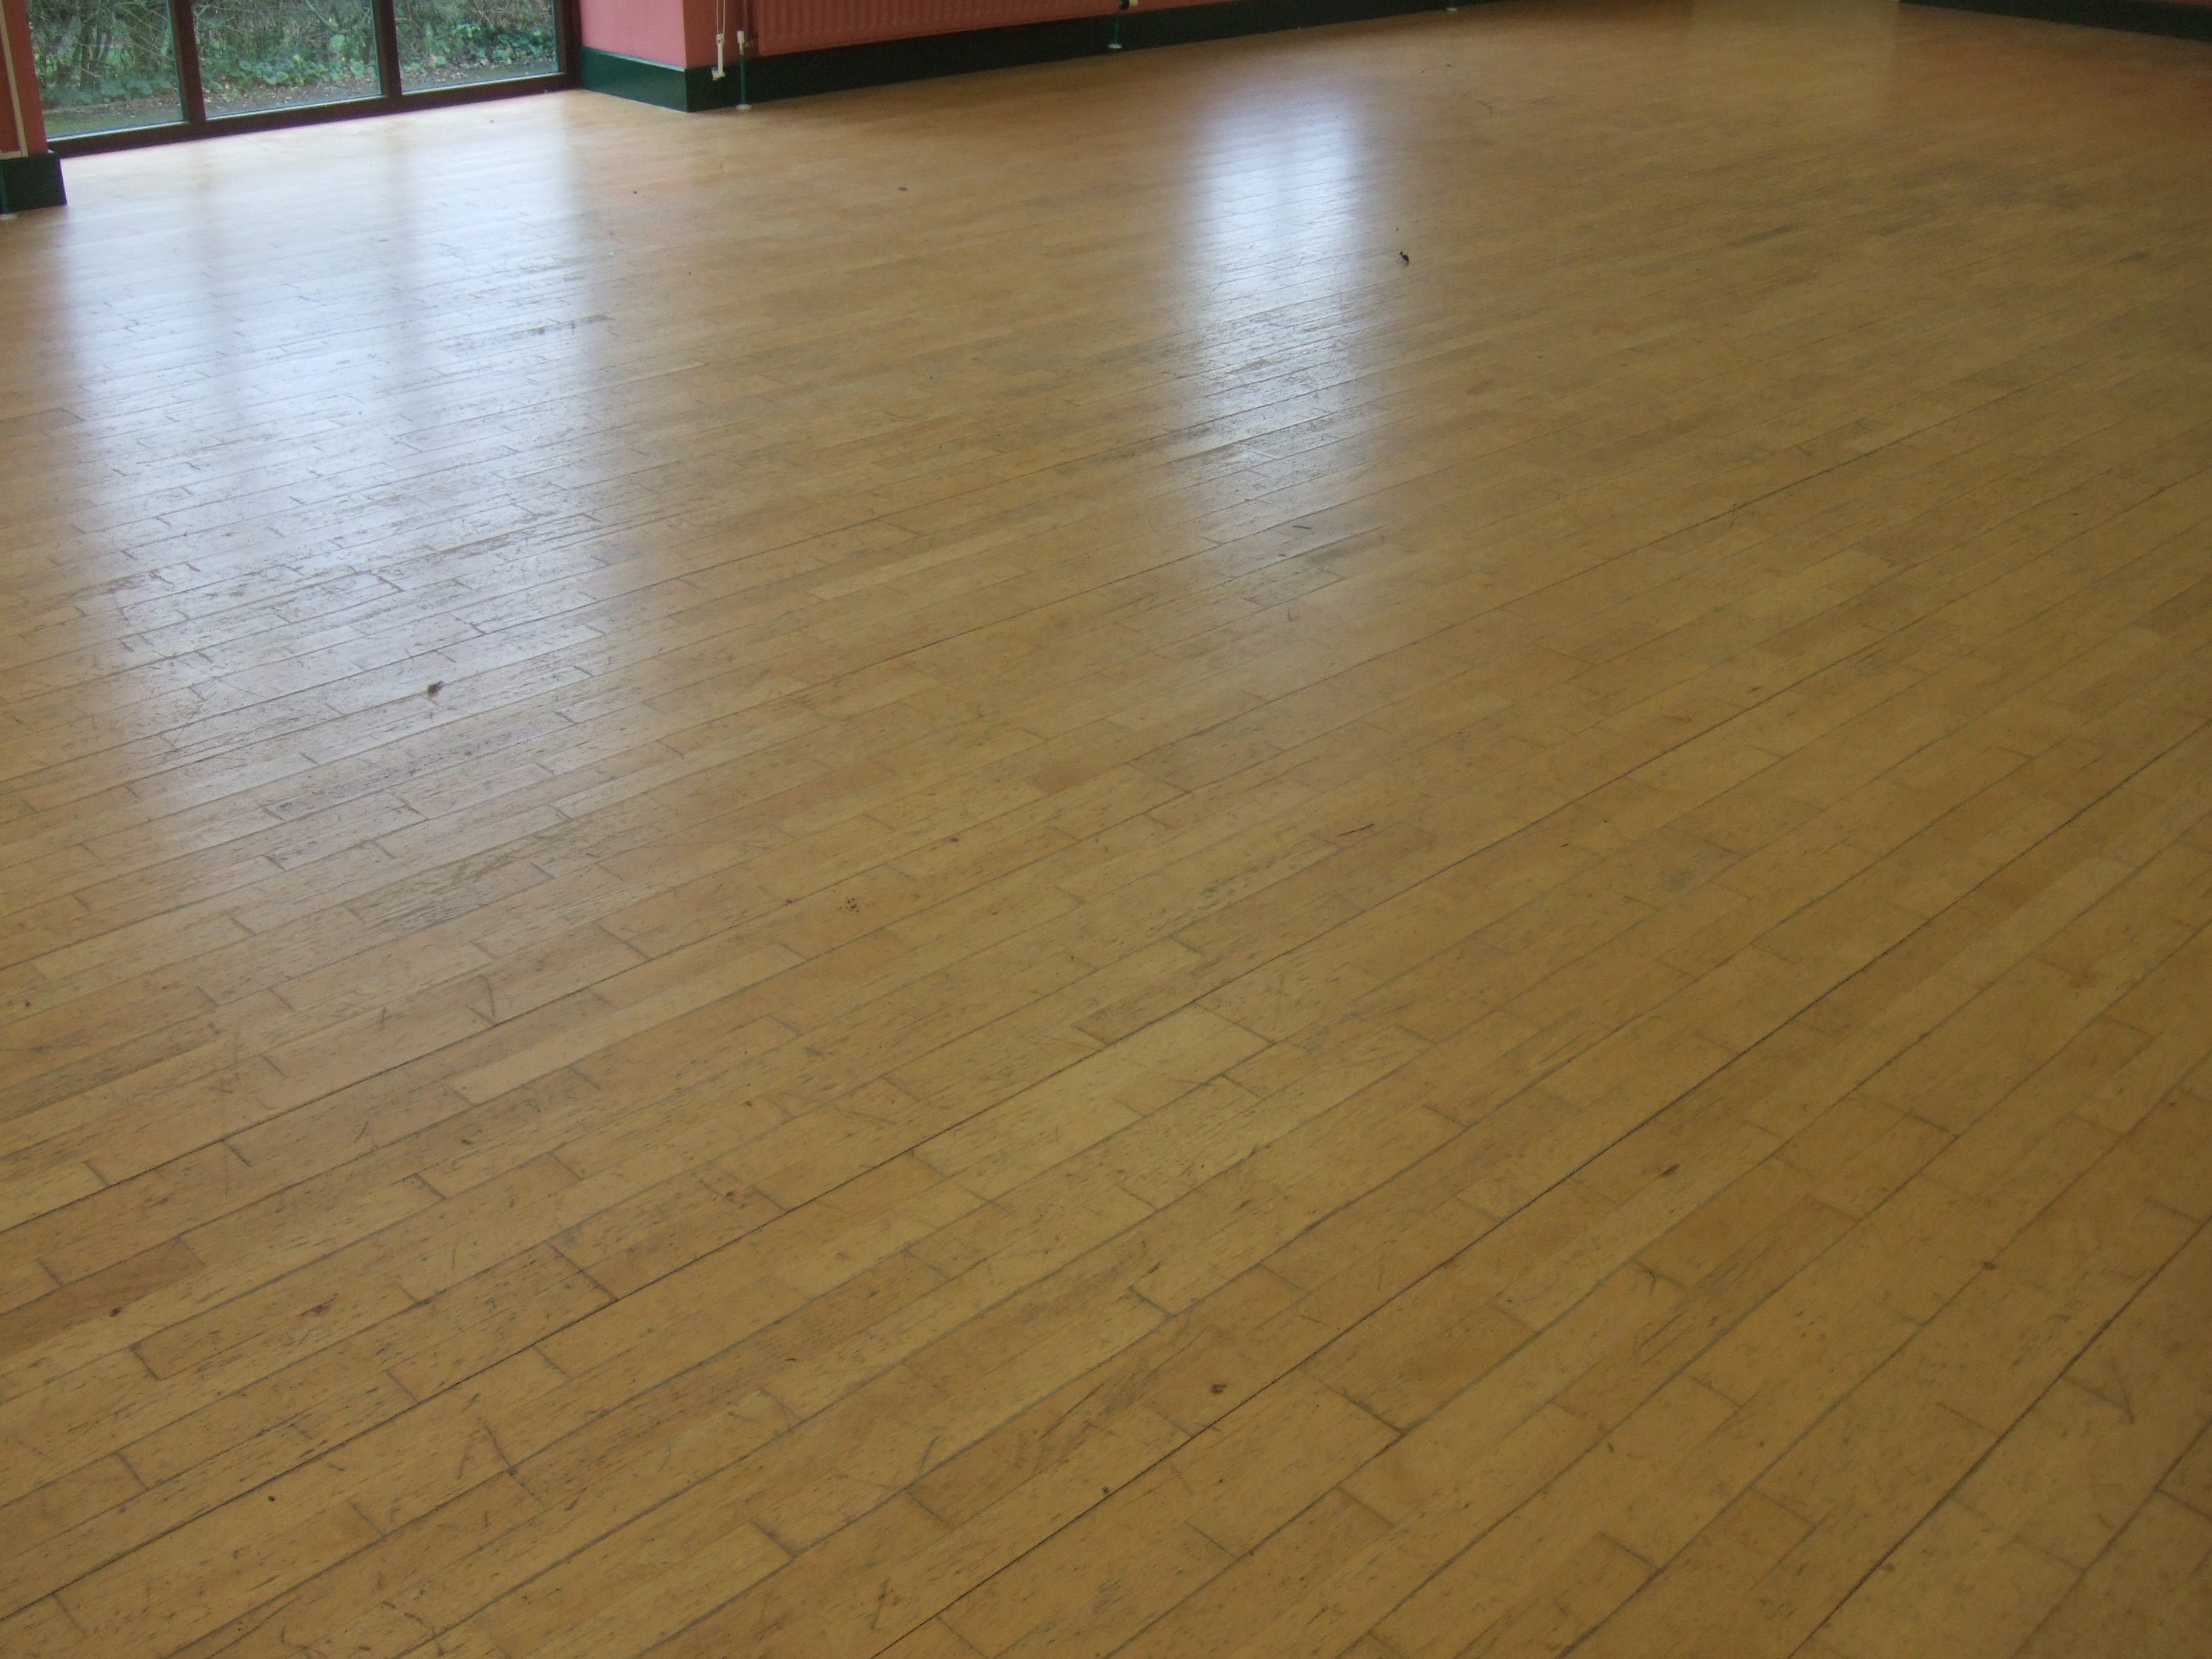 Community hall with damaged beech laminate flooring